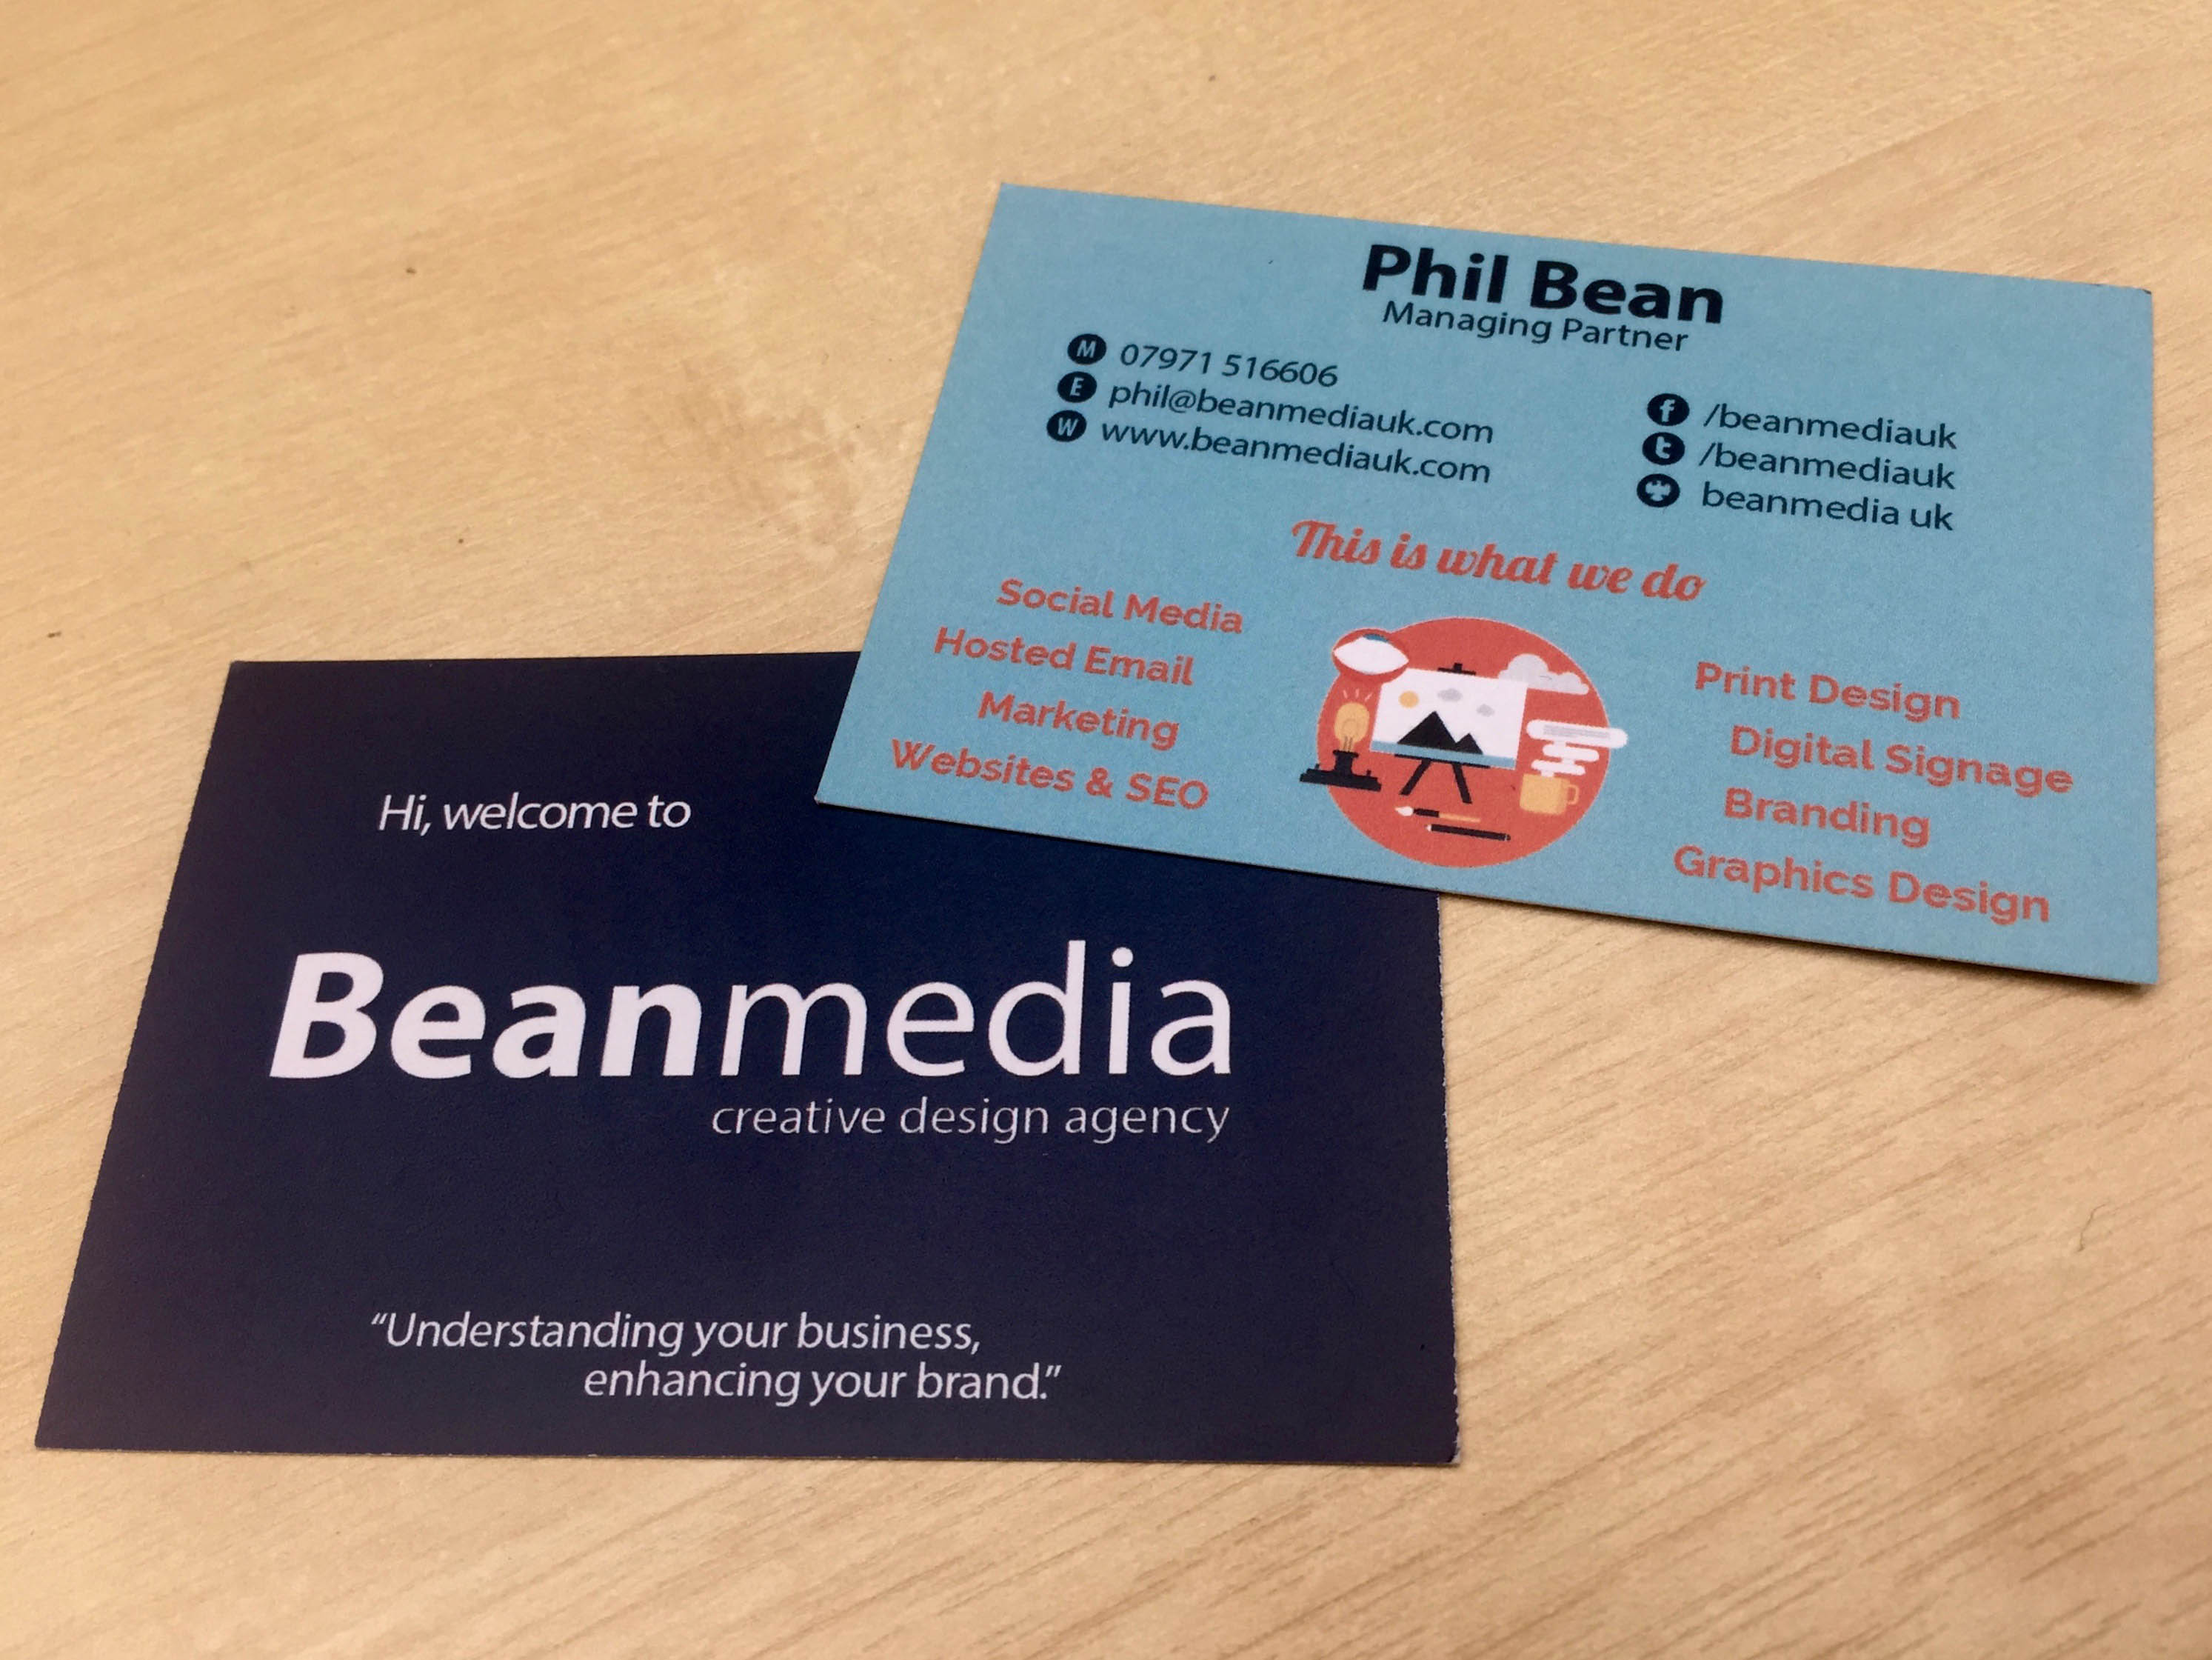 Beanmedia Business Cards Image